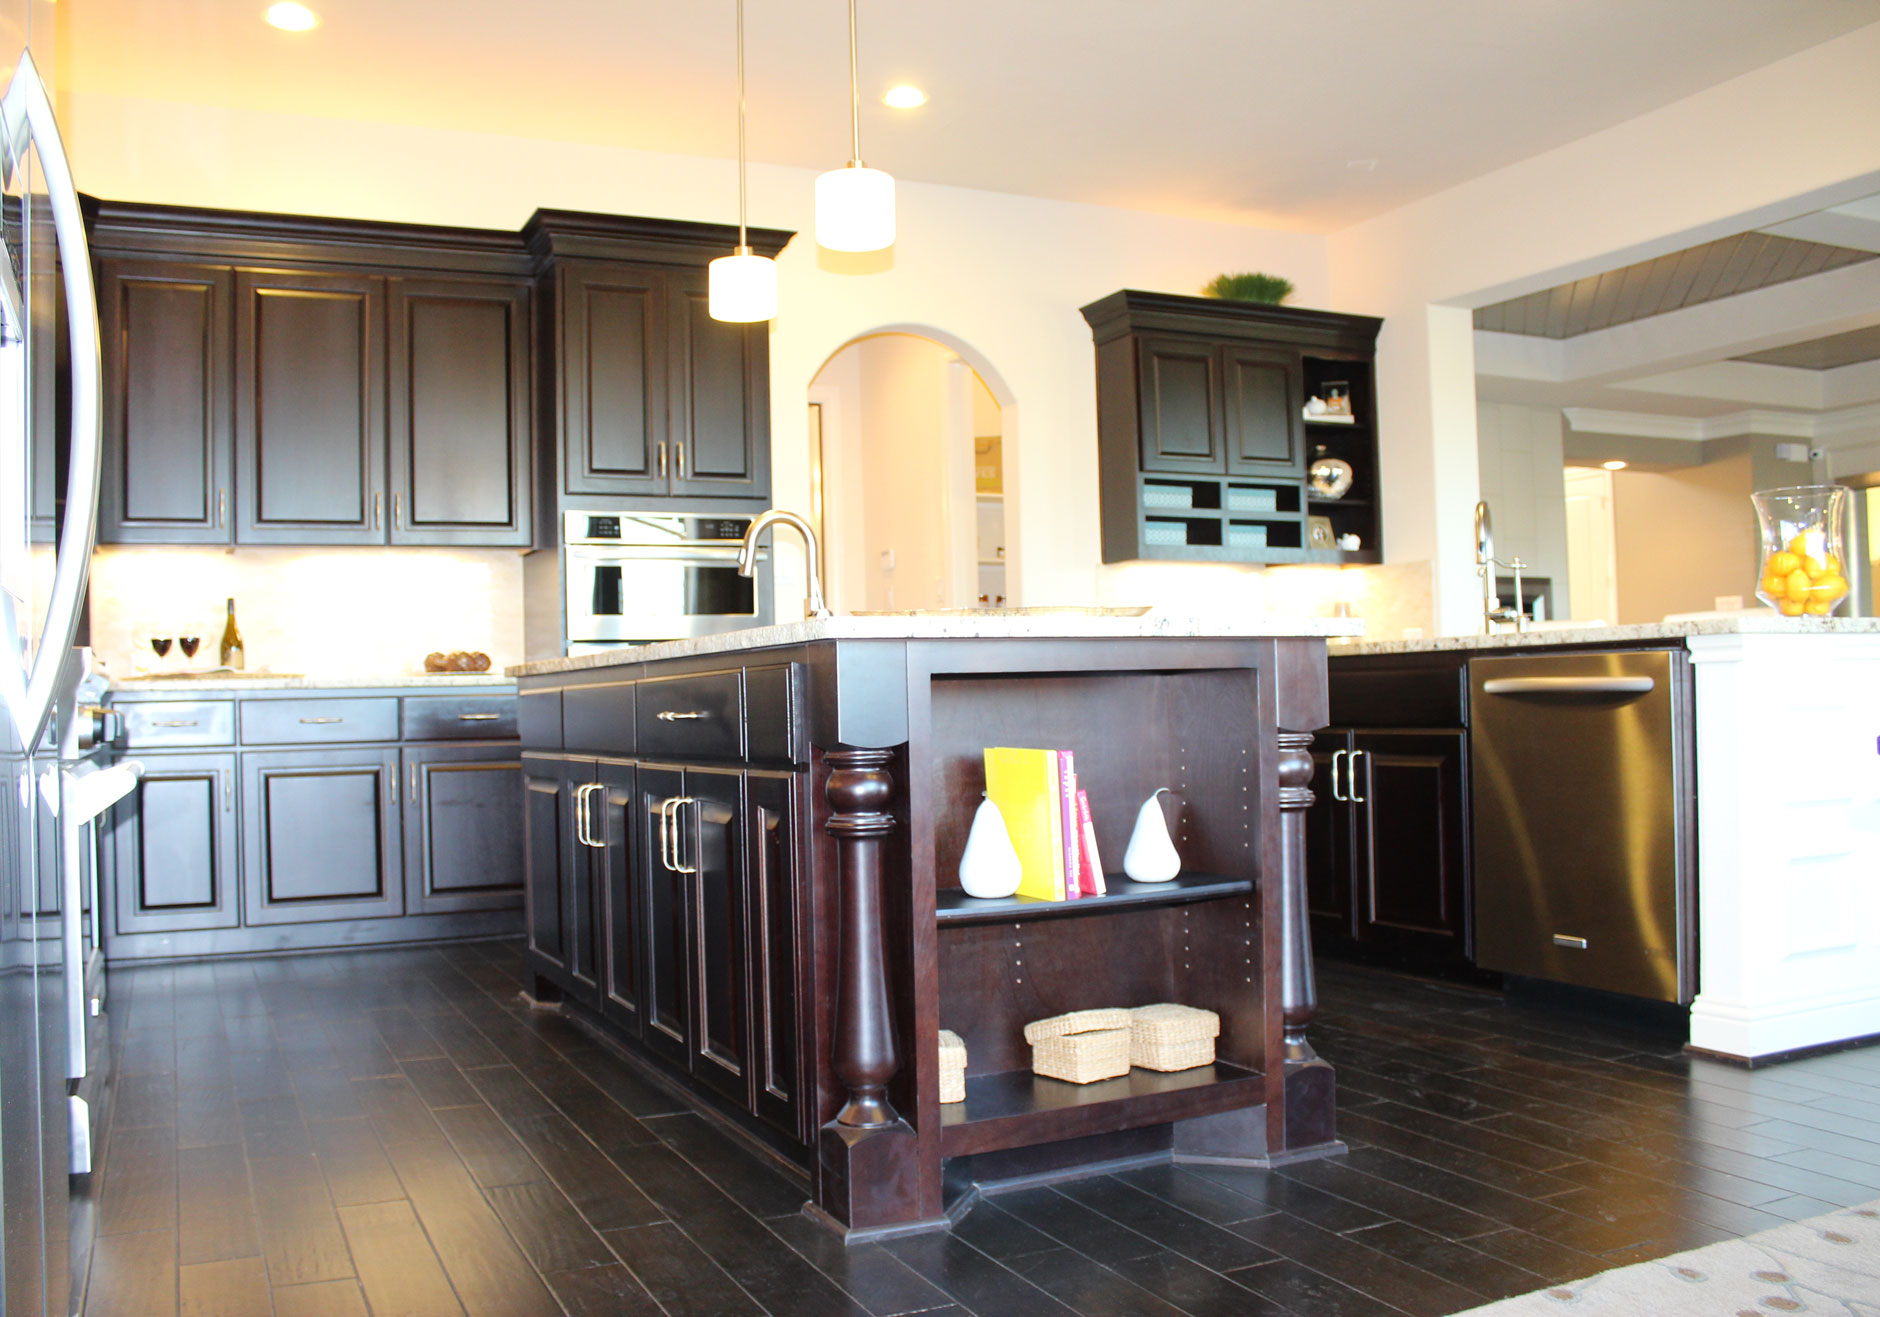 Kitchen Island Burrows Cabinets central Texas builder direct